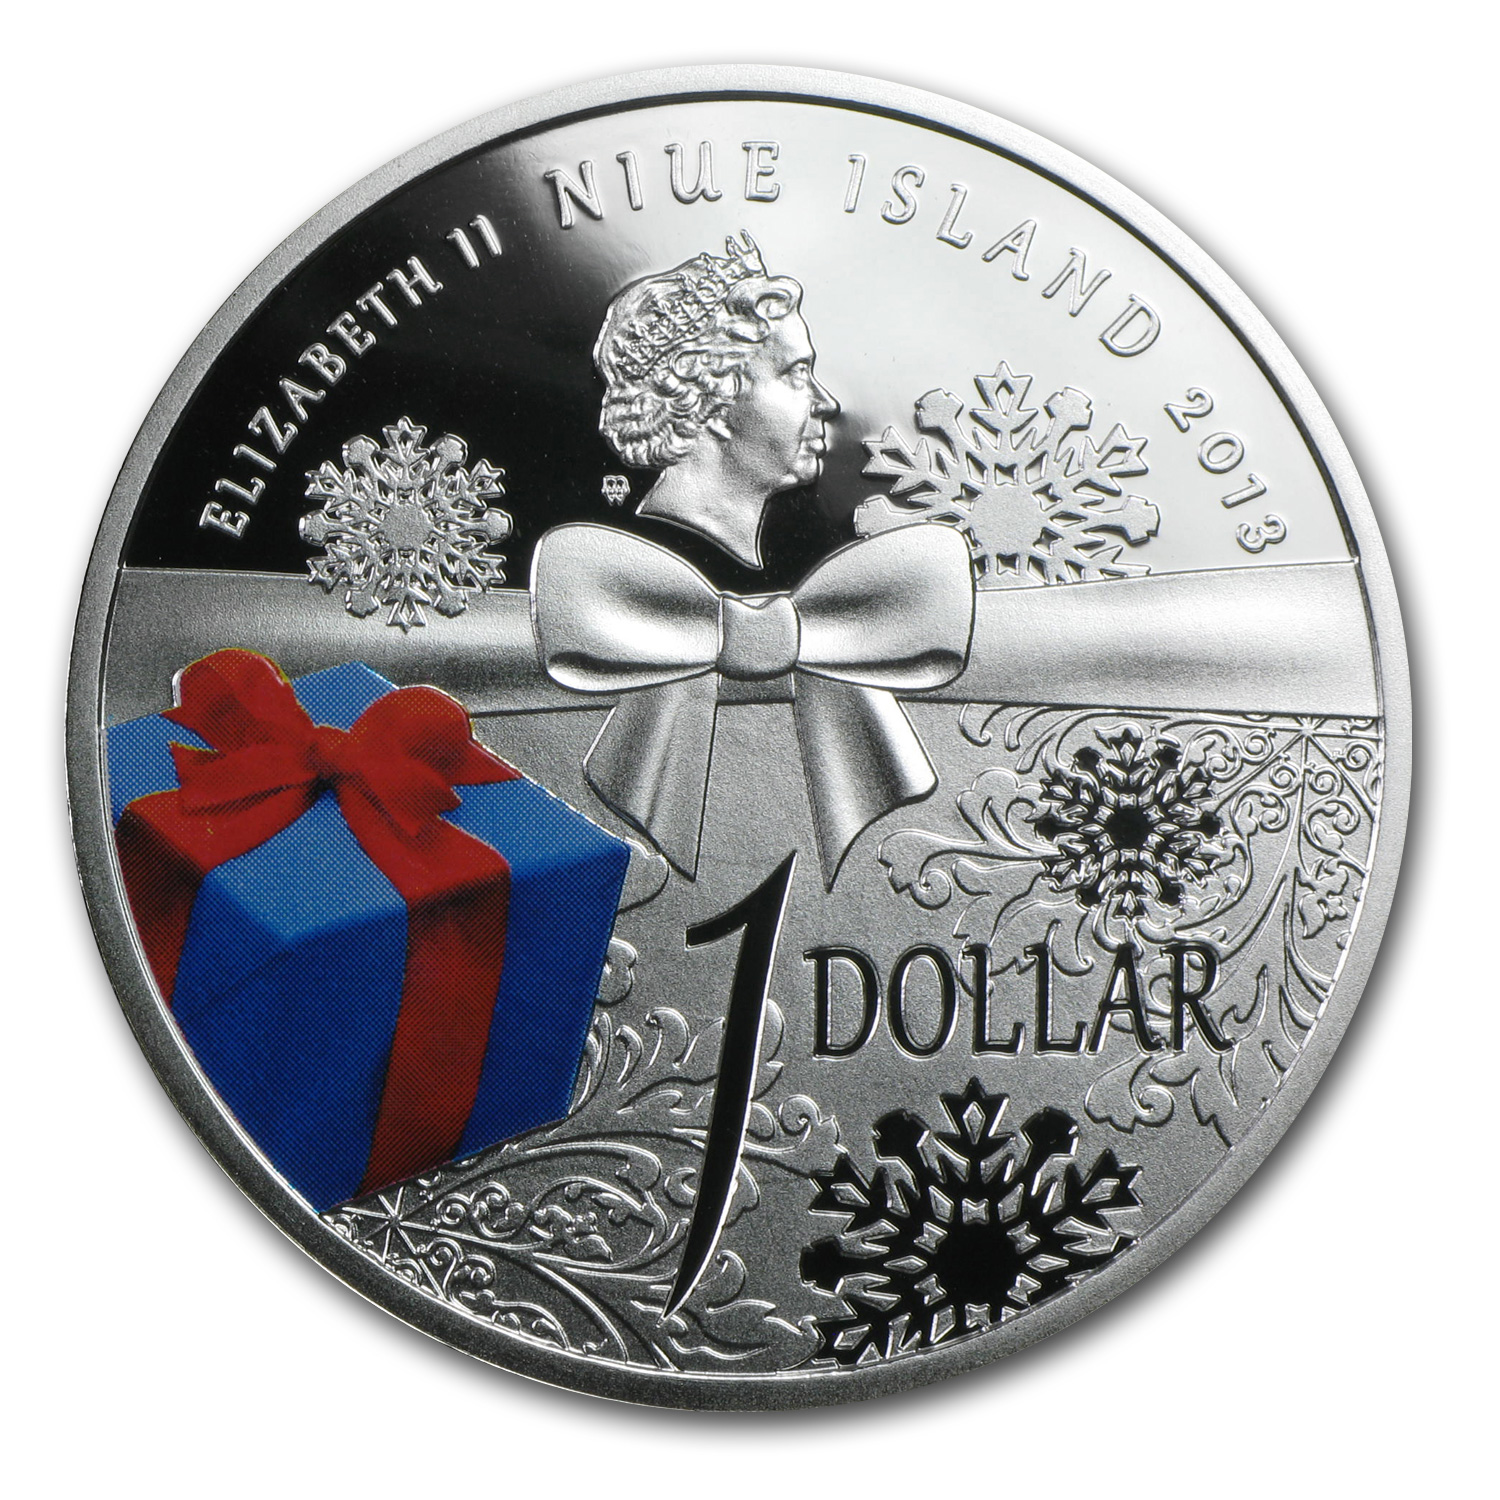 Niue 2013 Silver Proof $1 Merry Christmas Coin